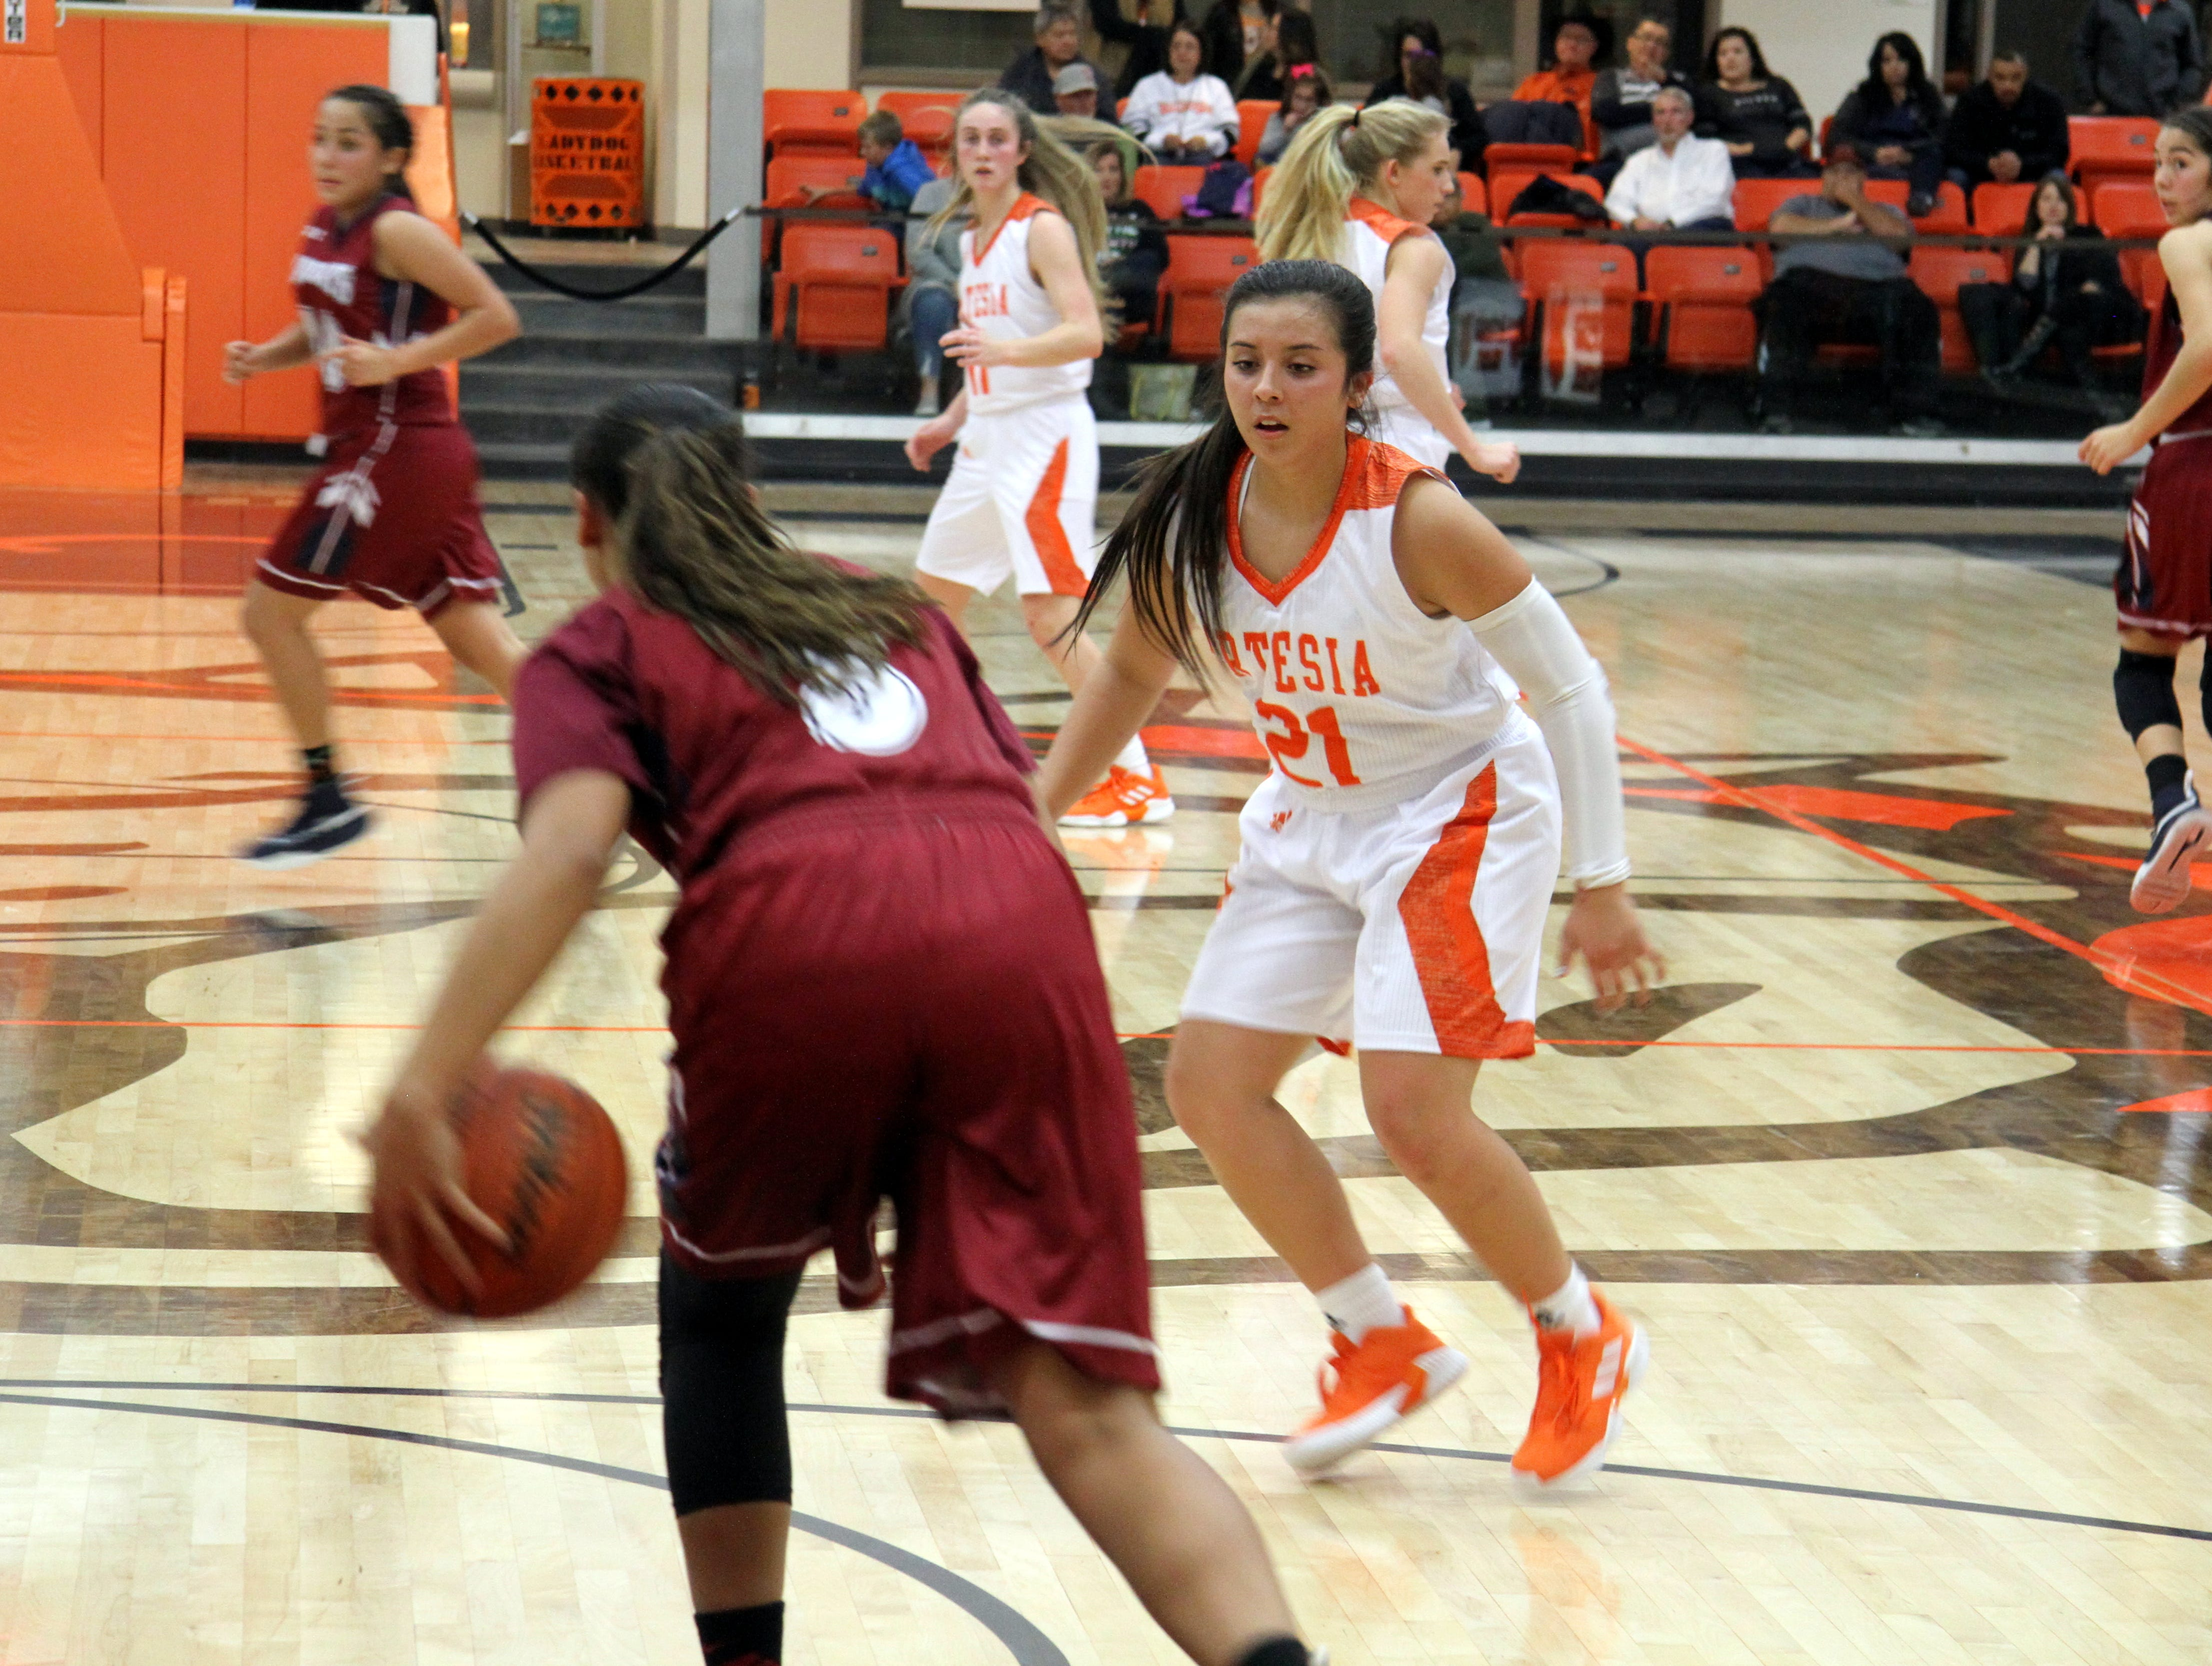 Kyrah Gonzales (21) guards a Deming player during Friday's second round of the Artesia Tournament of Champions.